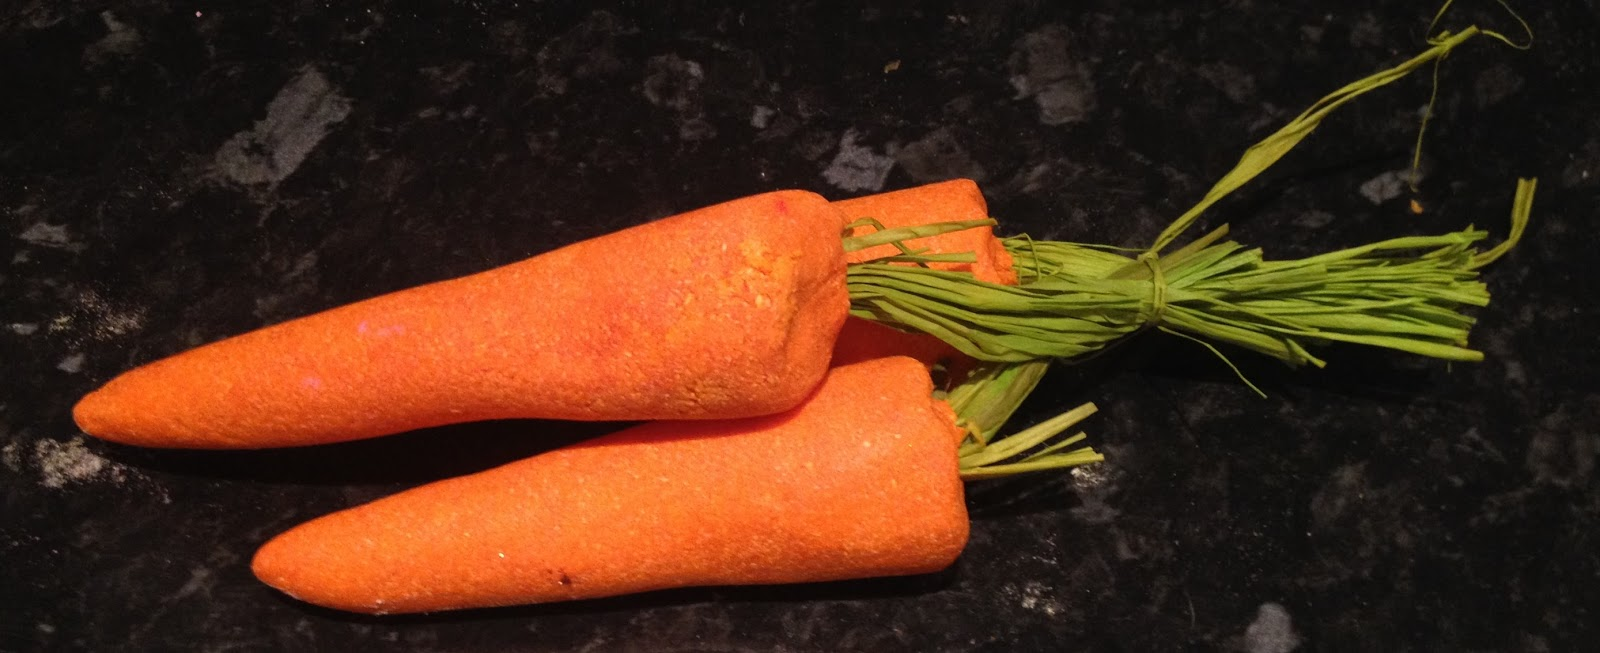 Lush's Easter Range 2014, bunch of carrots